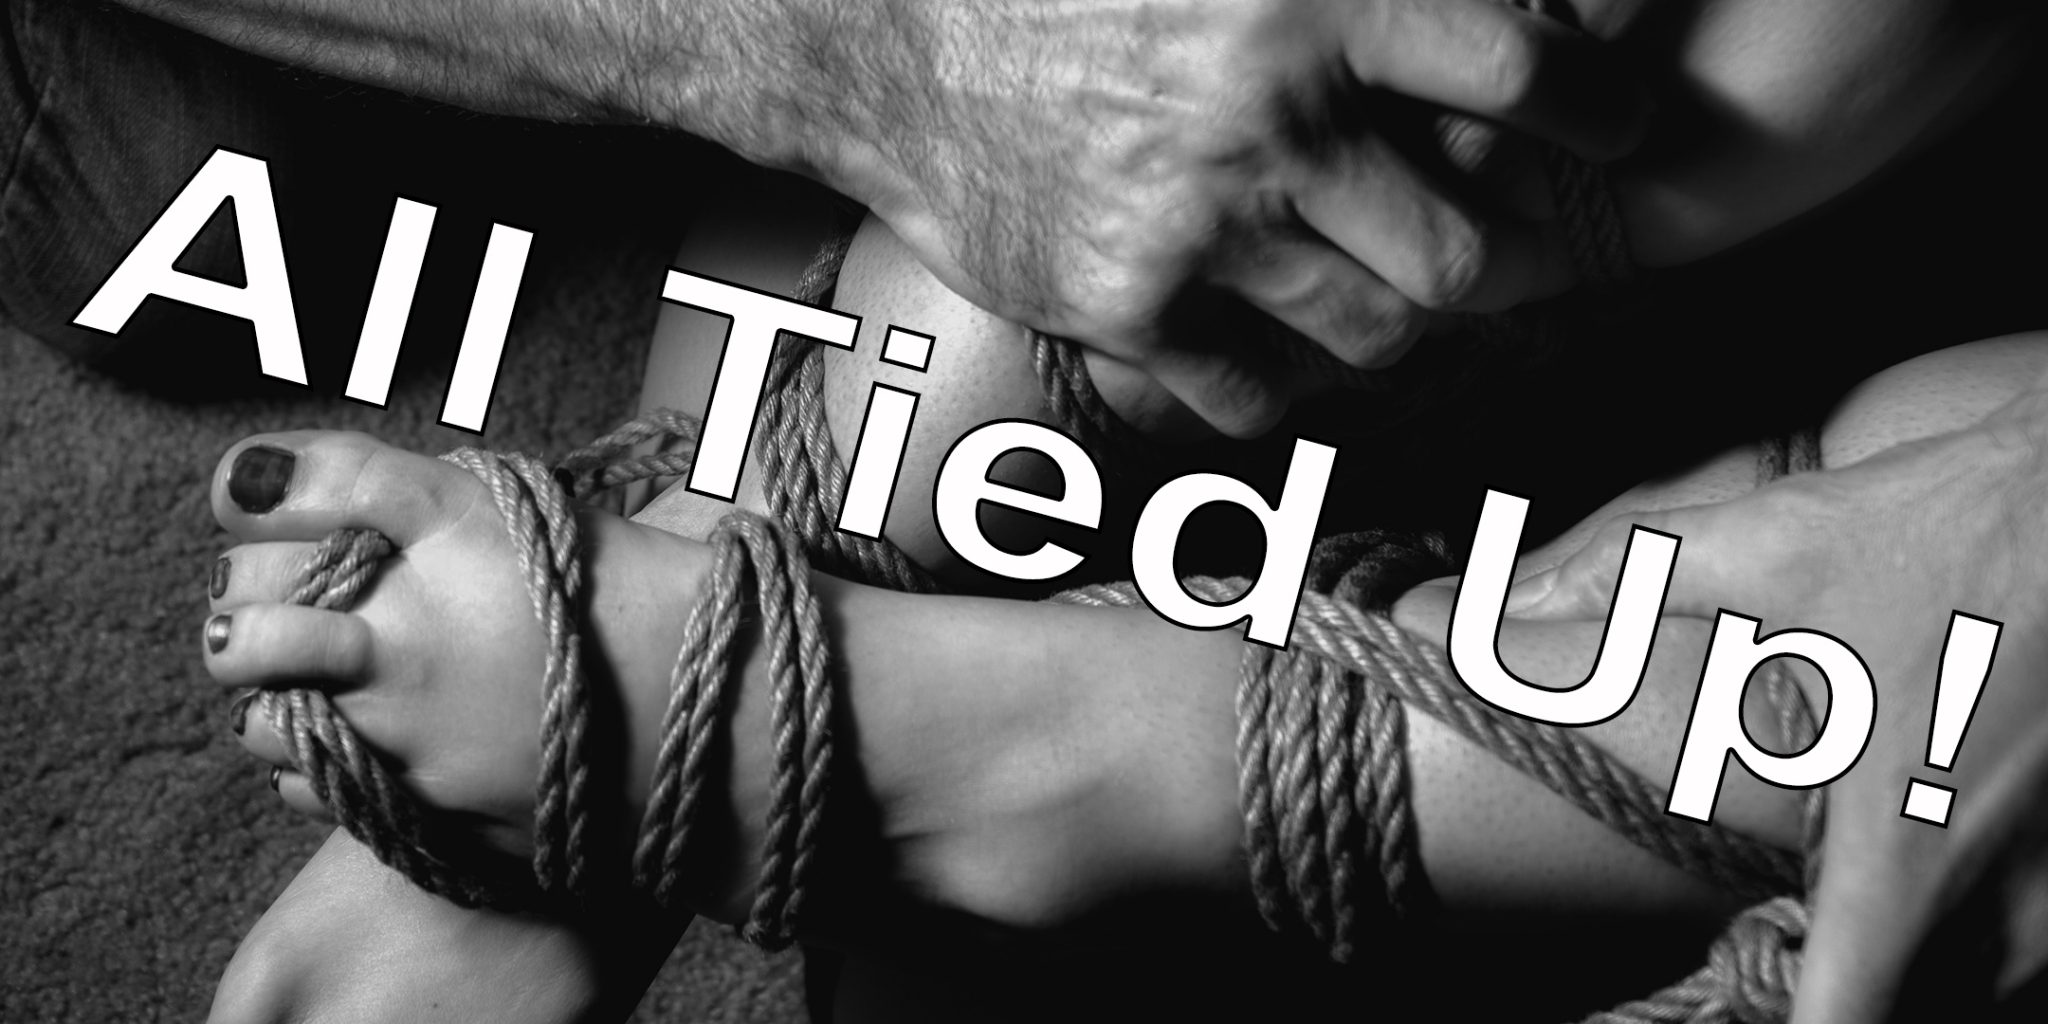 All Tied Up! November 3rd